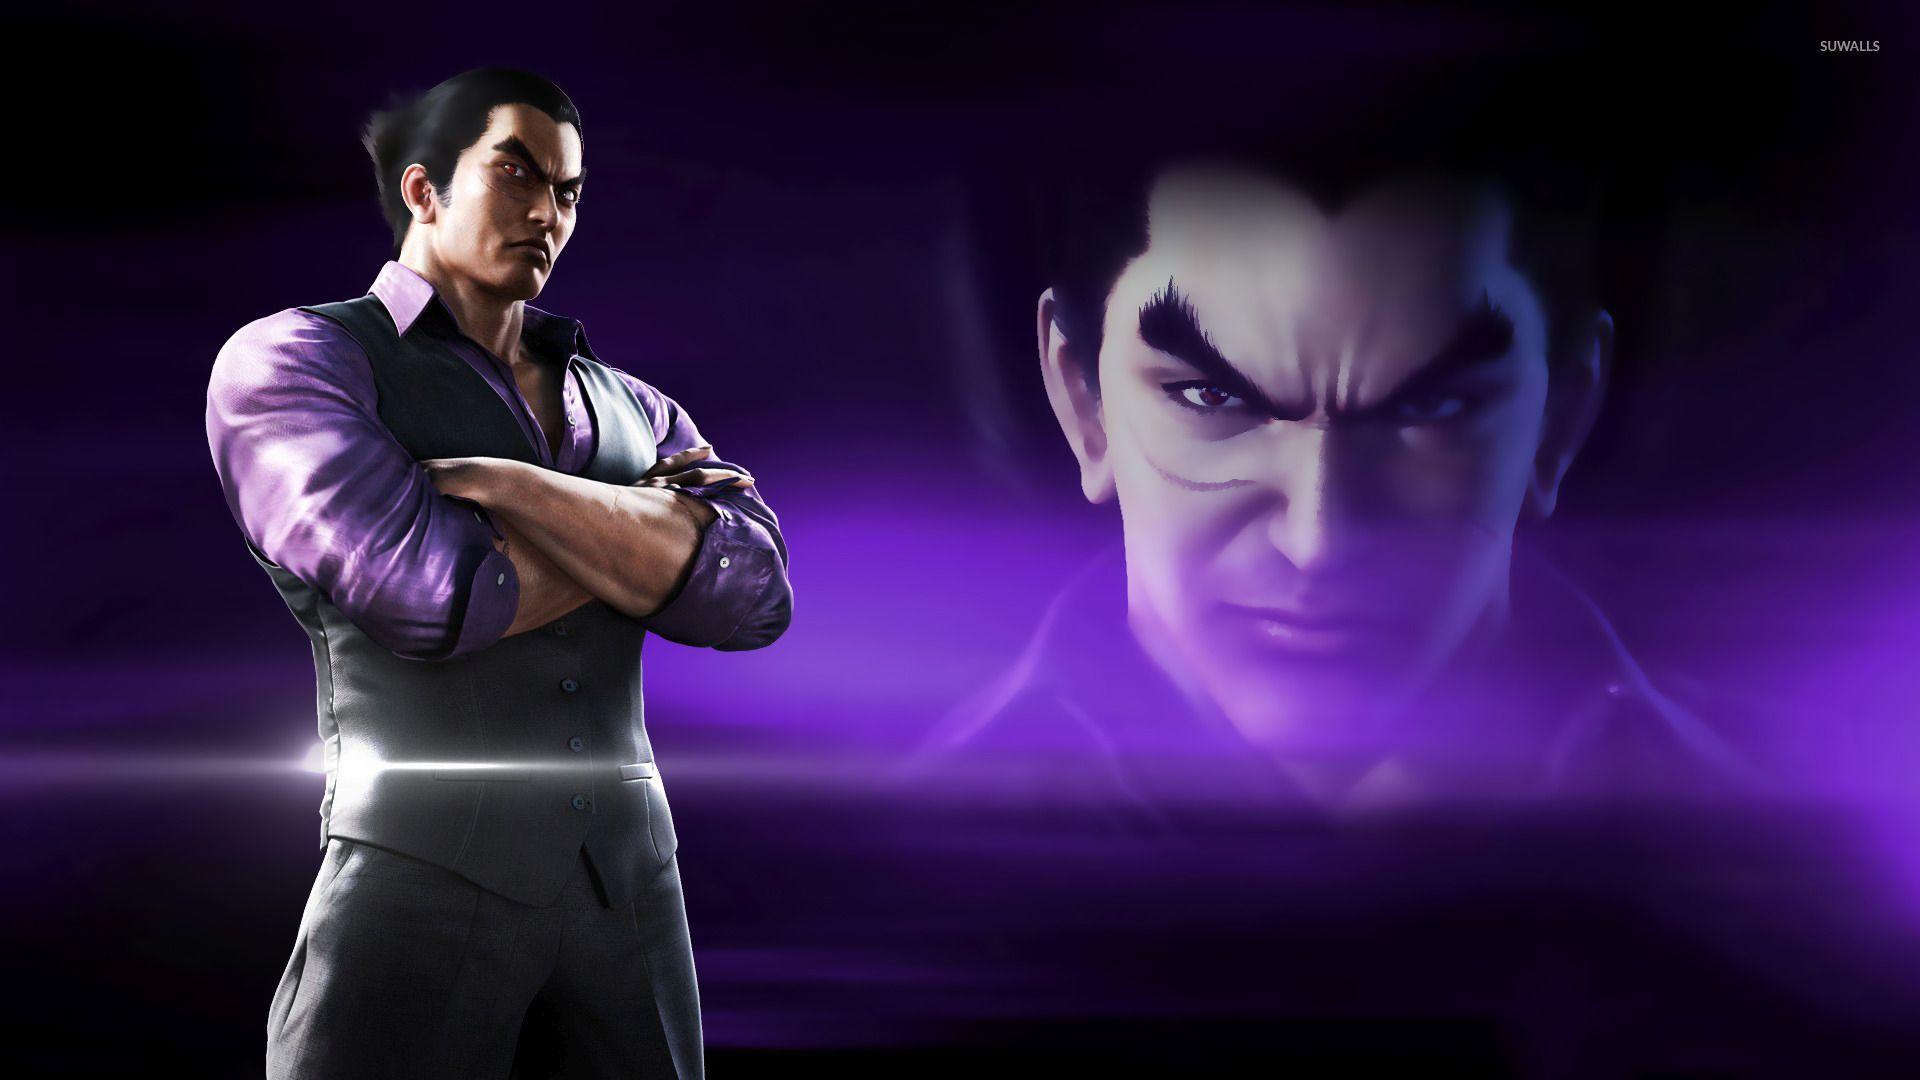 Kazuya Mishima - Tekken wallpaper - Game wallpapers - #41971